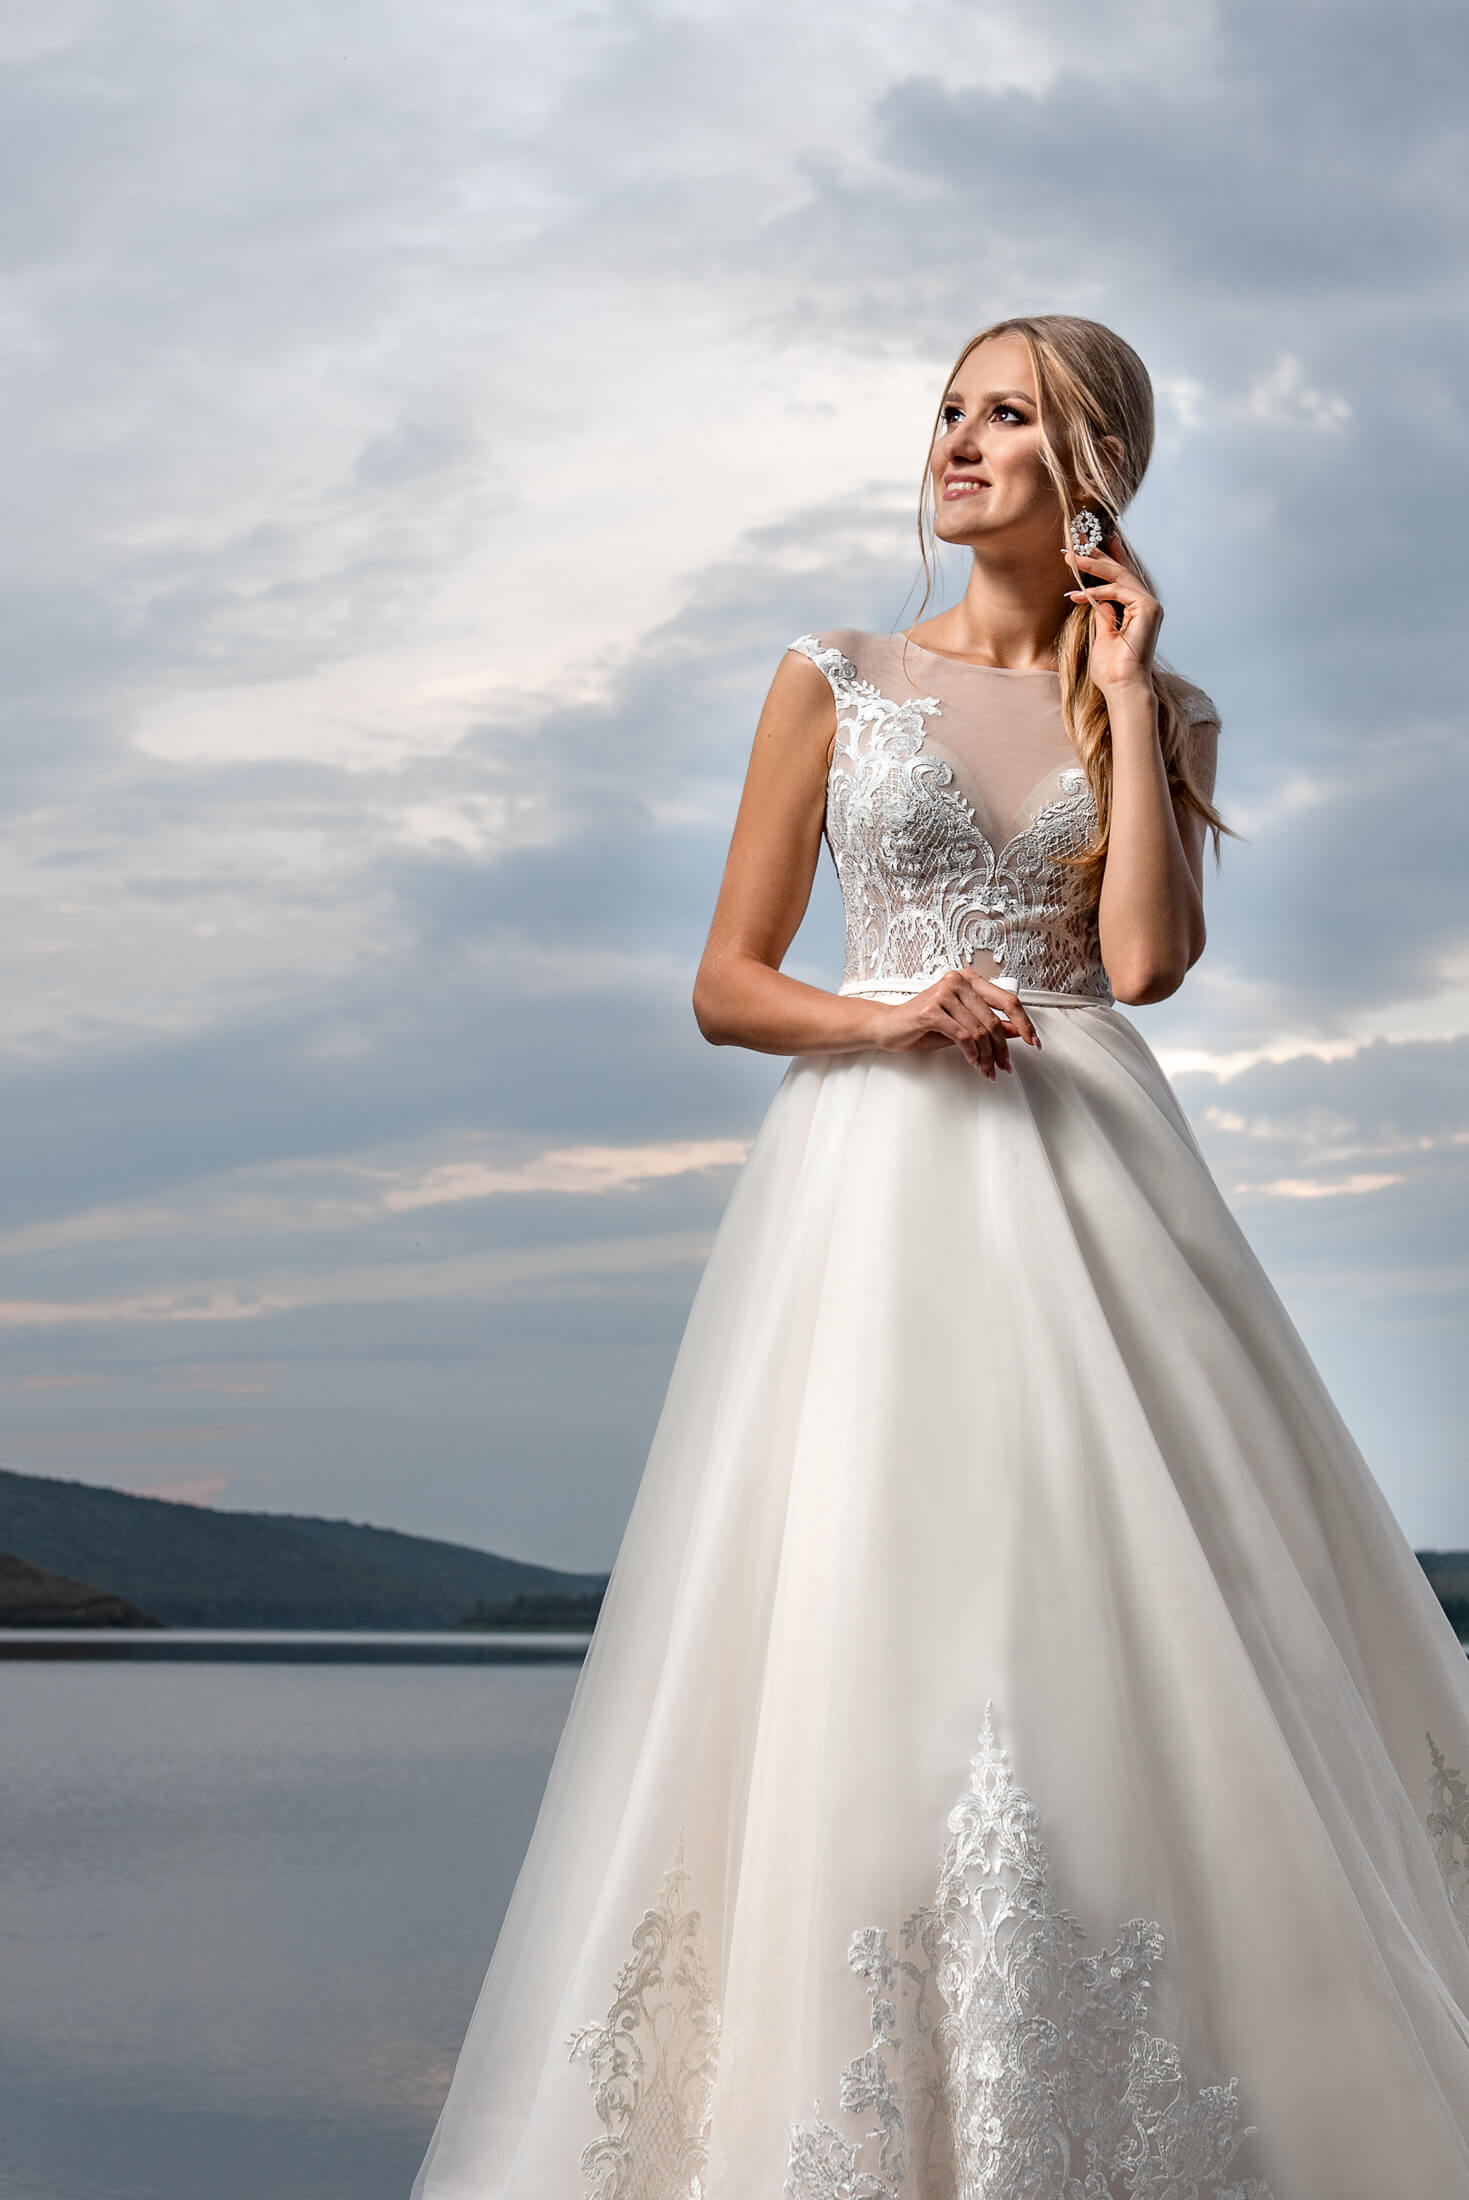 https://kayawedding.com/images/stories/virtuemart/product/SIG_2559 - 3 - 31.jpg